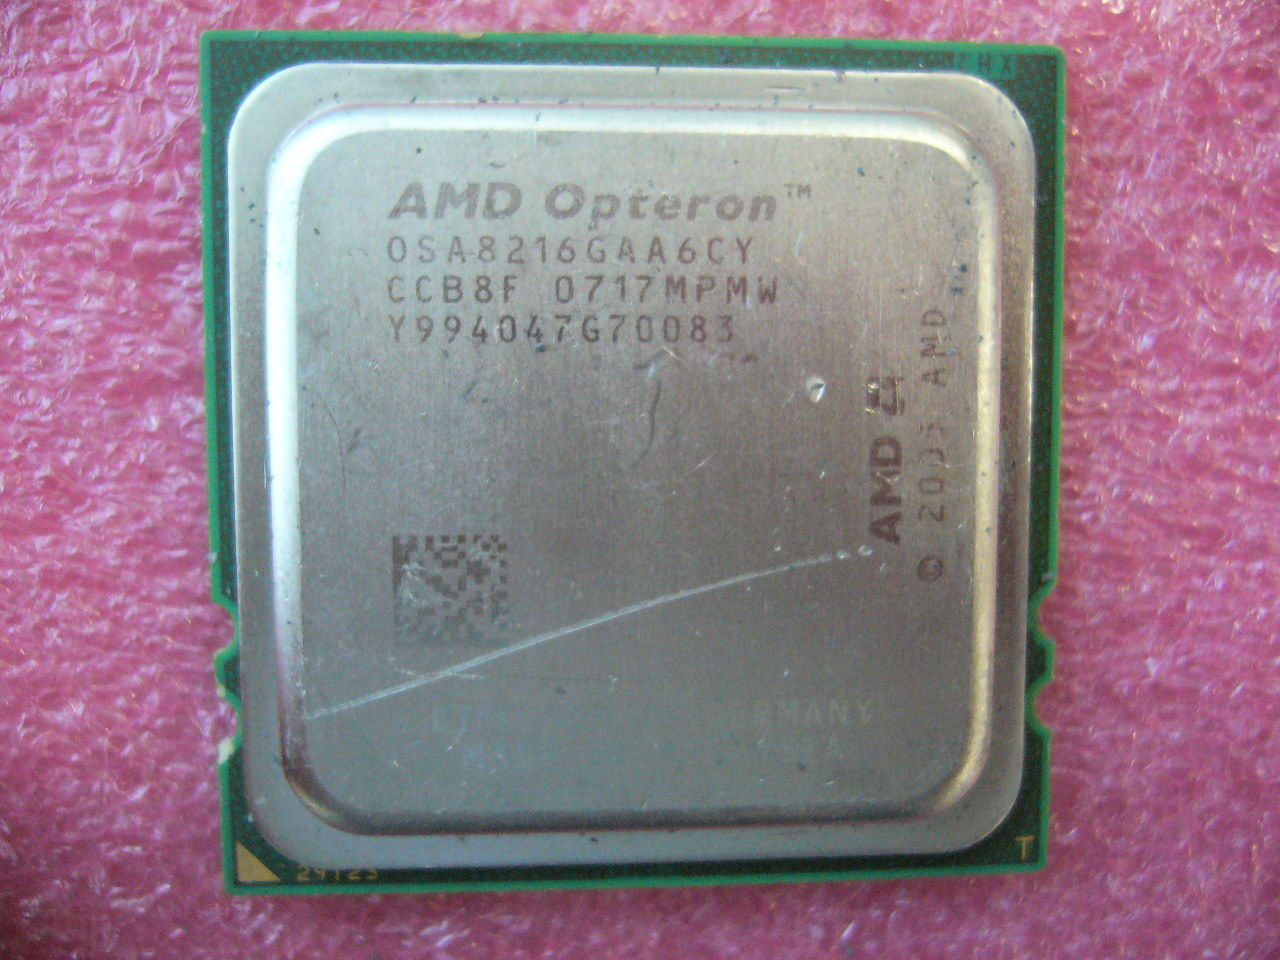 QTY 1x AMD OSA8216GAA6CY Opteron 8216 2.4 GHz Dual Core CPU Socket F 1207